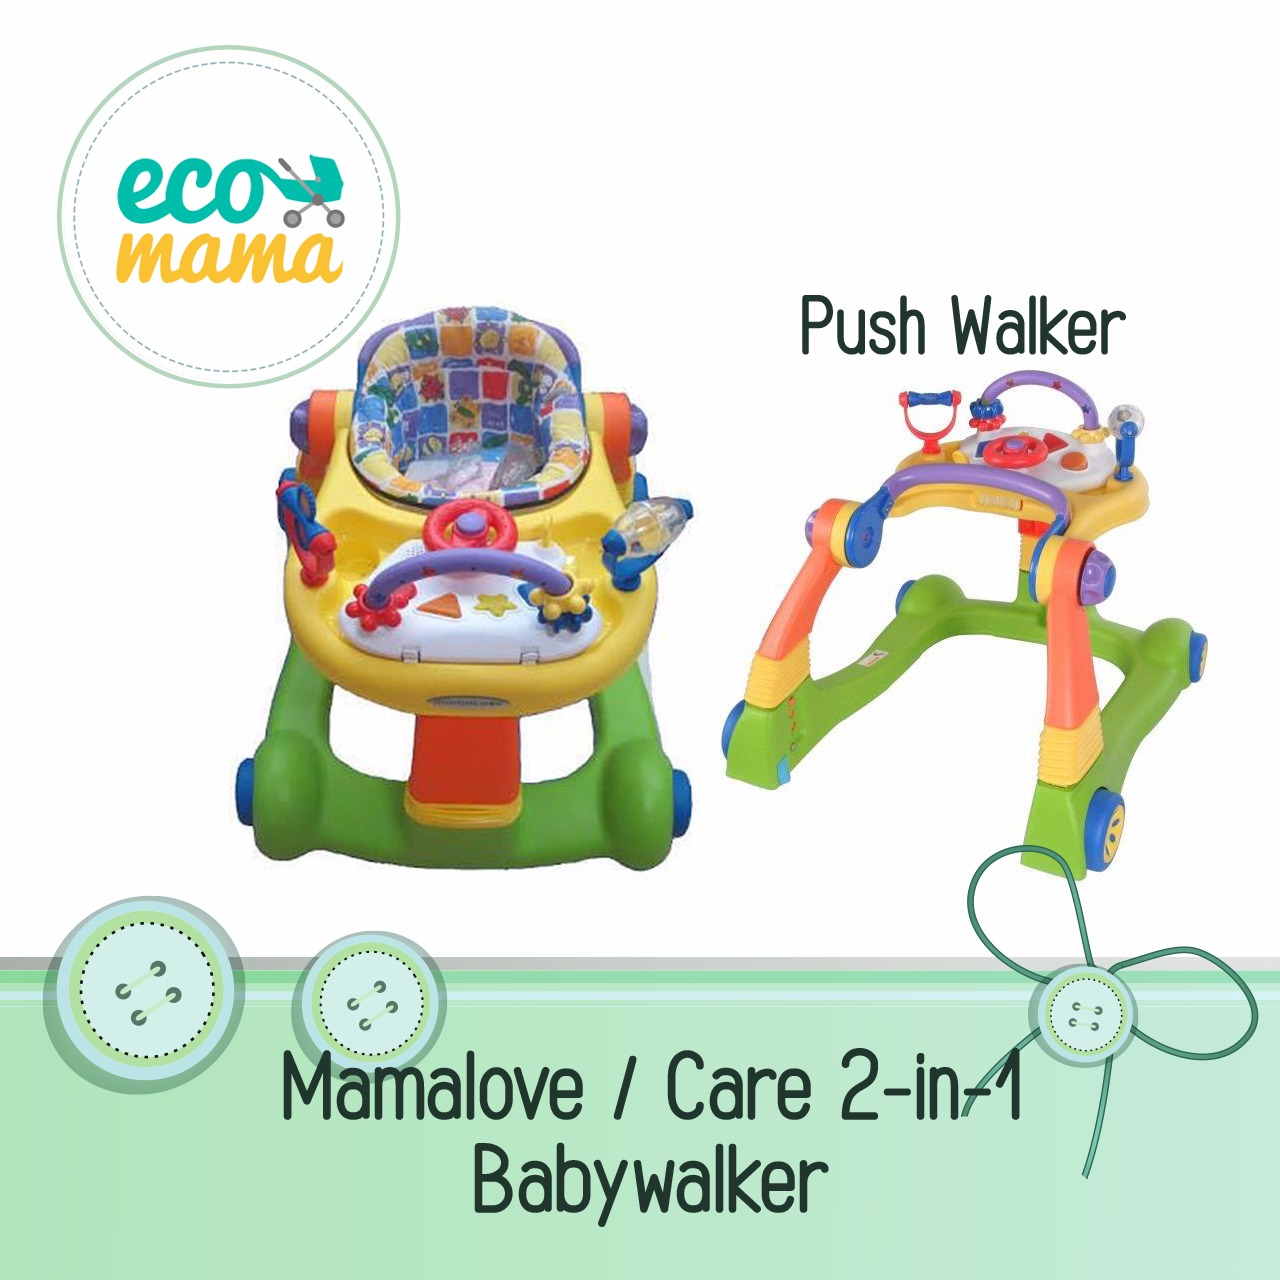 Baby Walker Mamalove 2 in 1